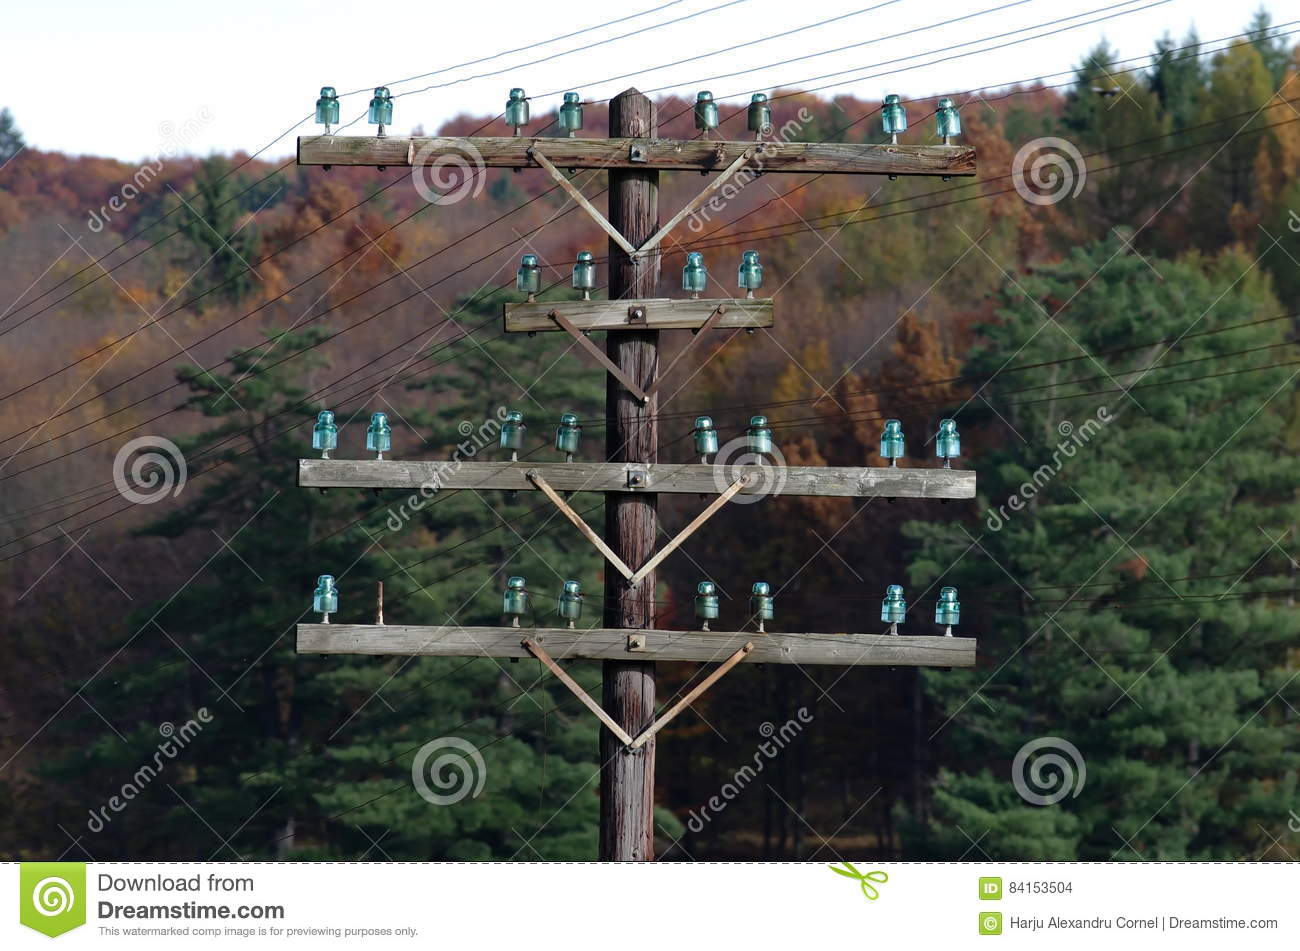 Power Pole Insulators besides Old Electric Pole Insulators besides Old Power Insulators furthermore Search likewise Tribune highlights. on old railroad telephone poles wiring diagram